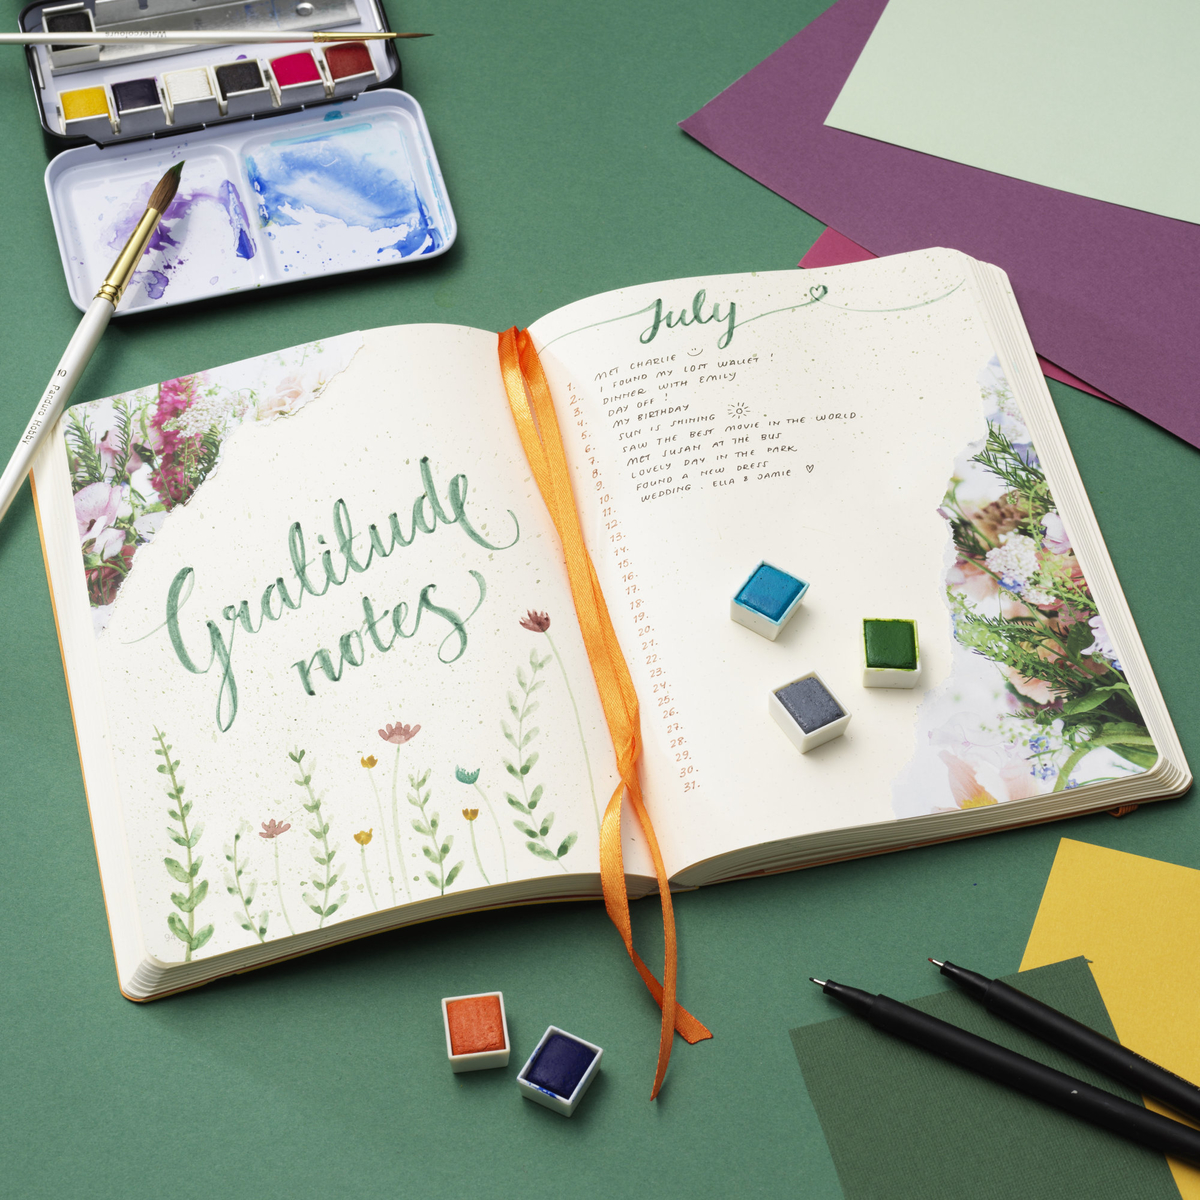 Bullet Journaling as mindfulness